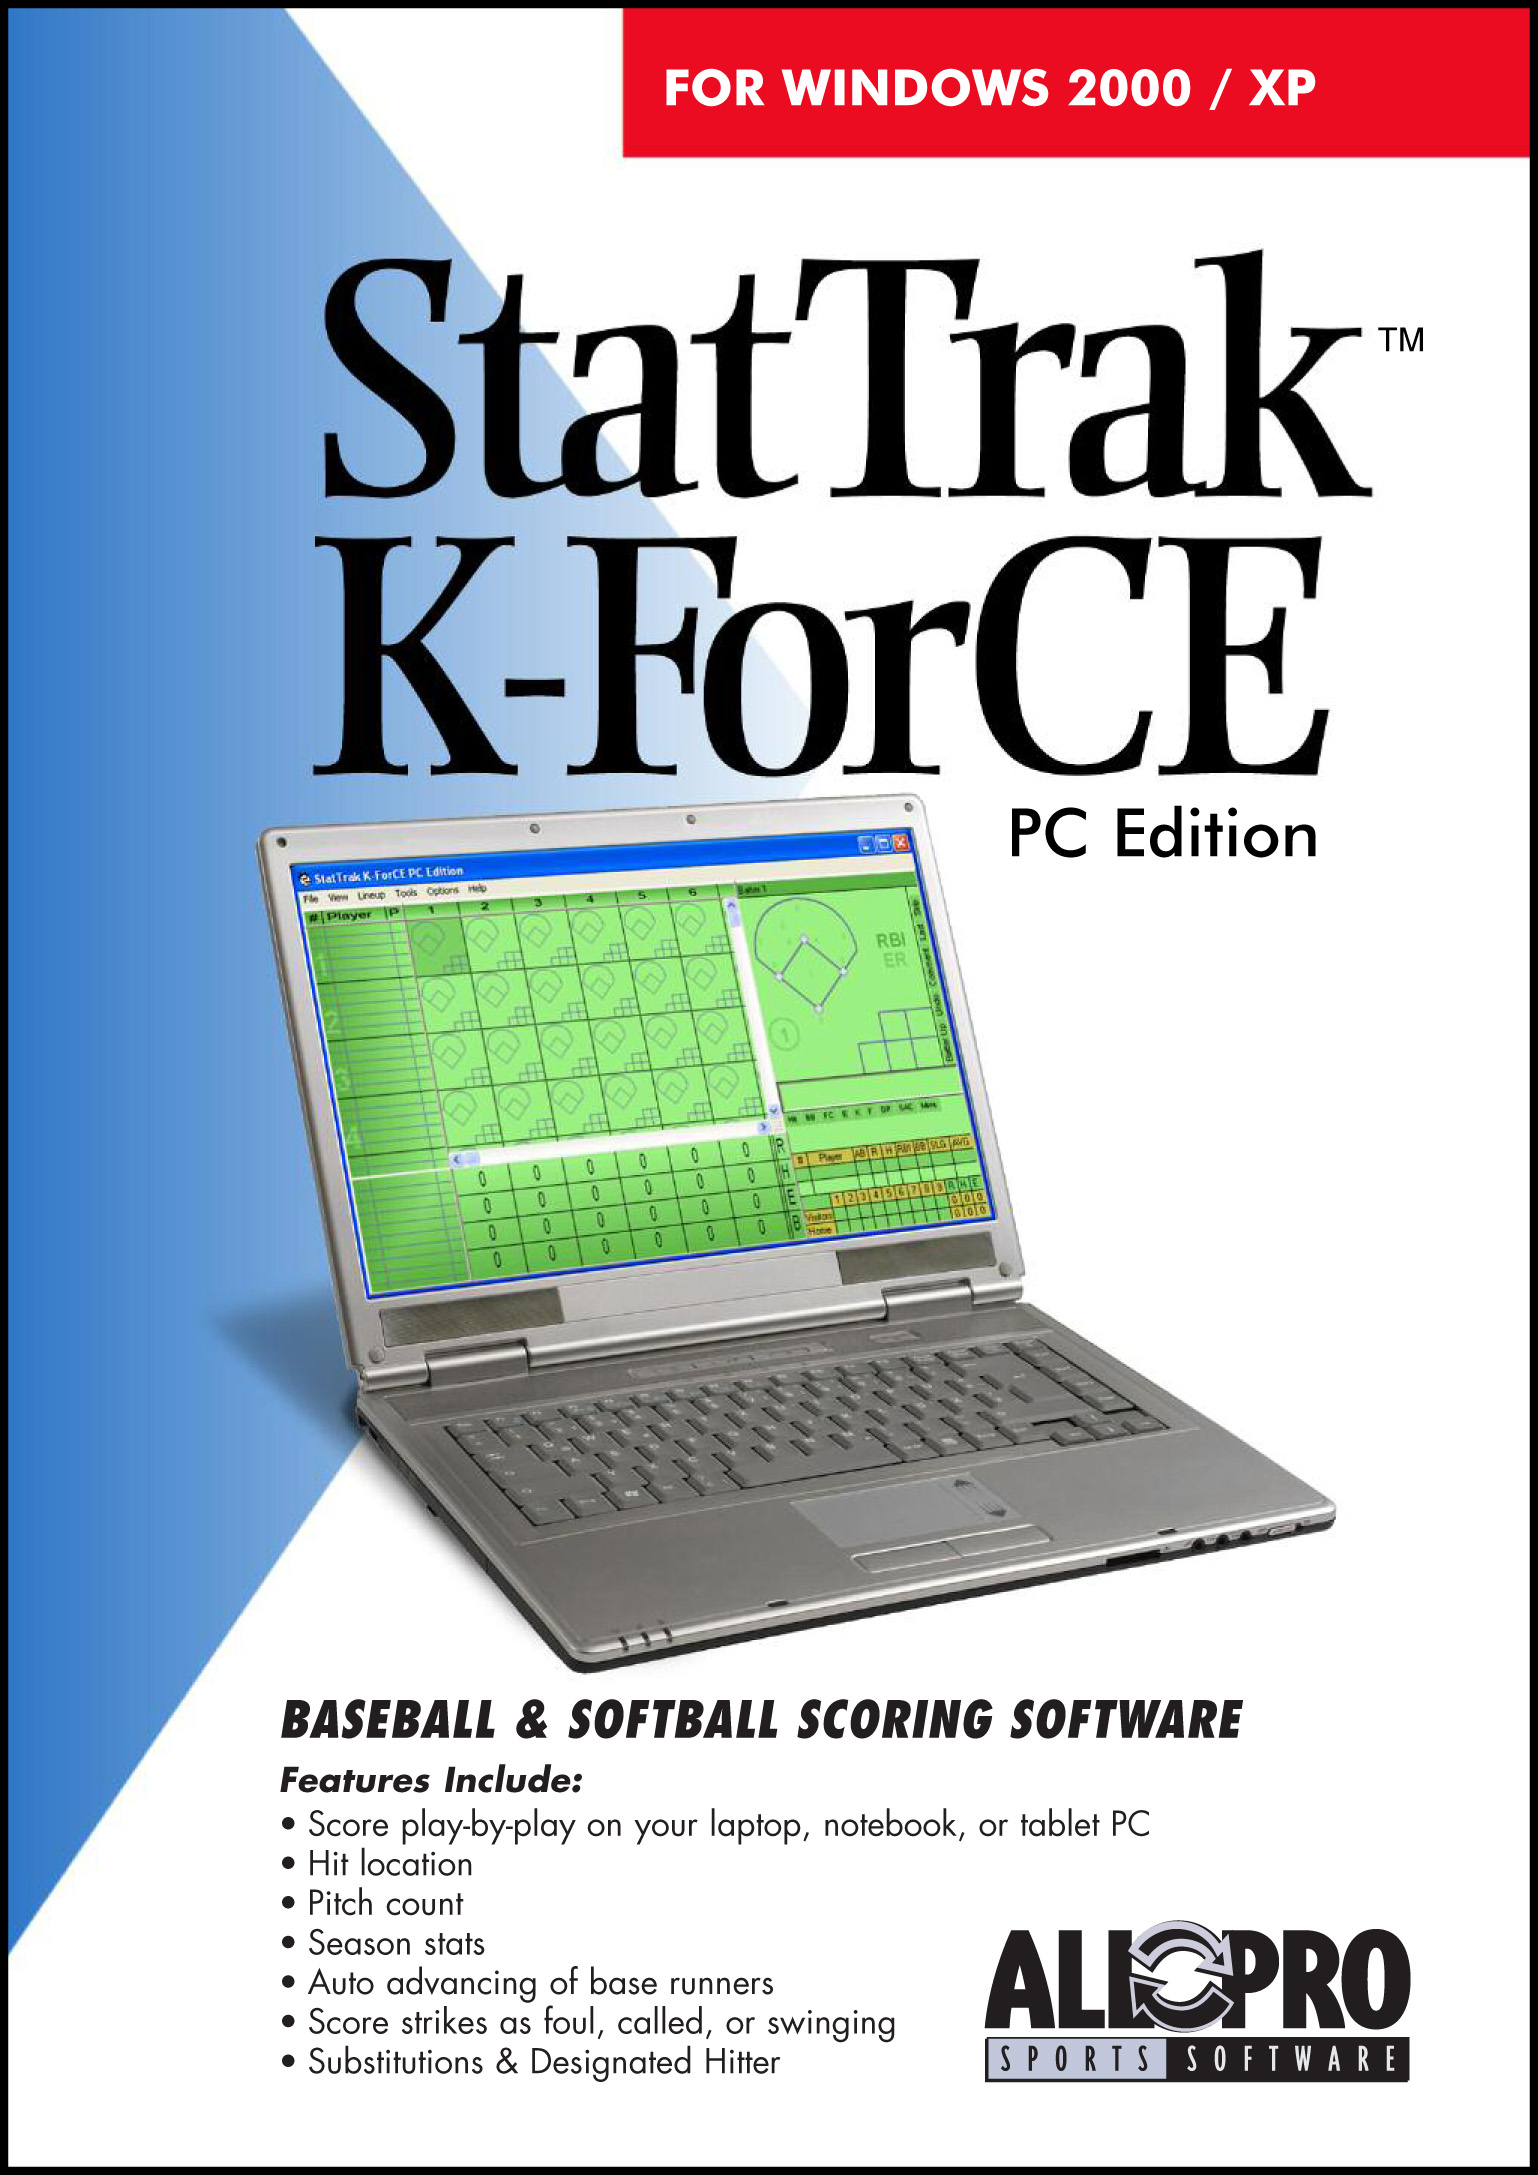 Score baseball and softball games on your PC.